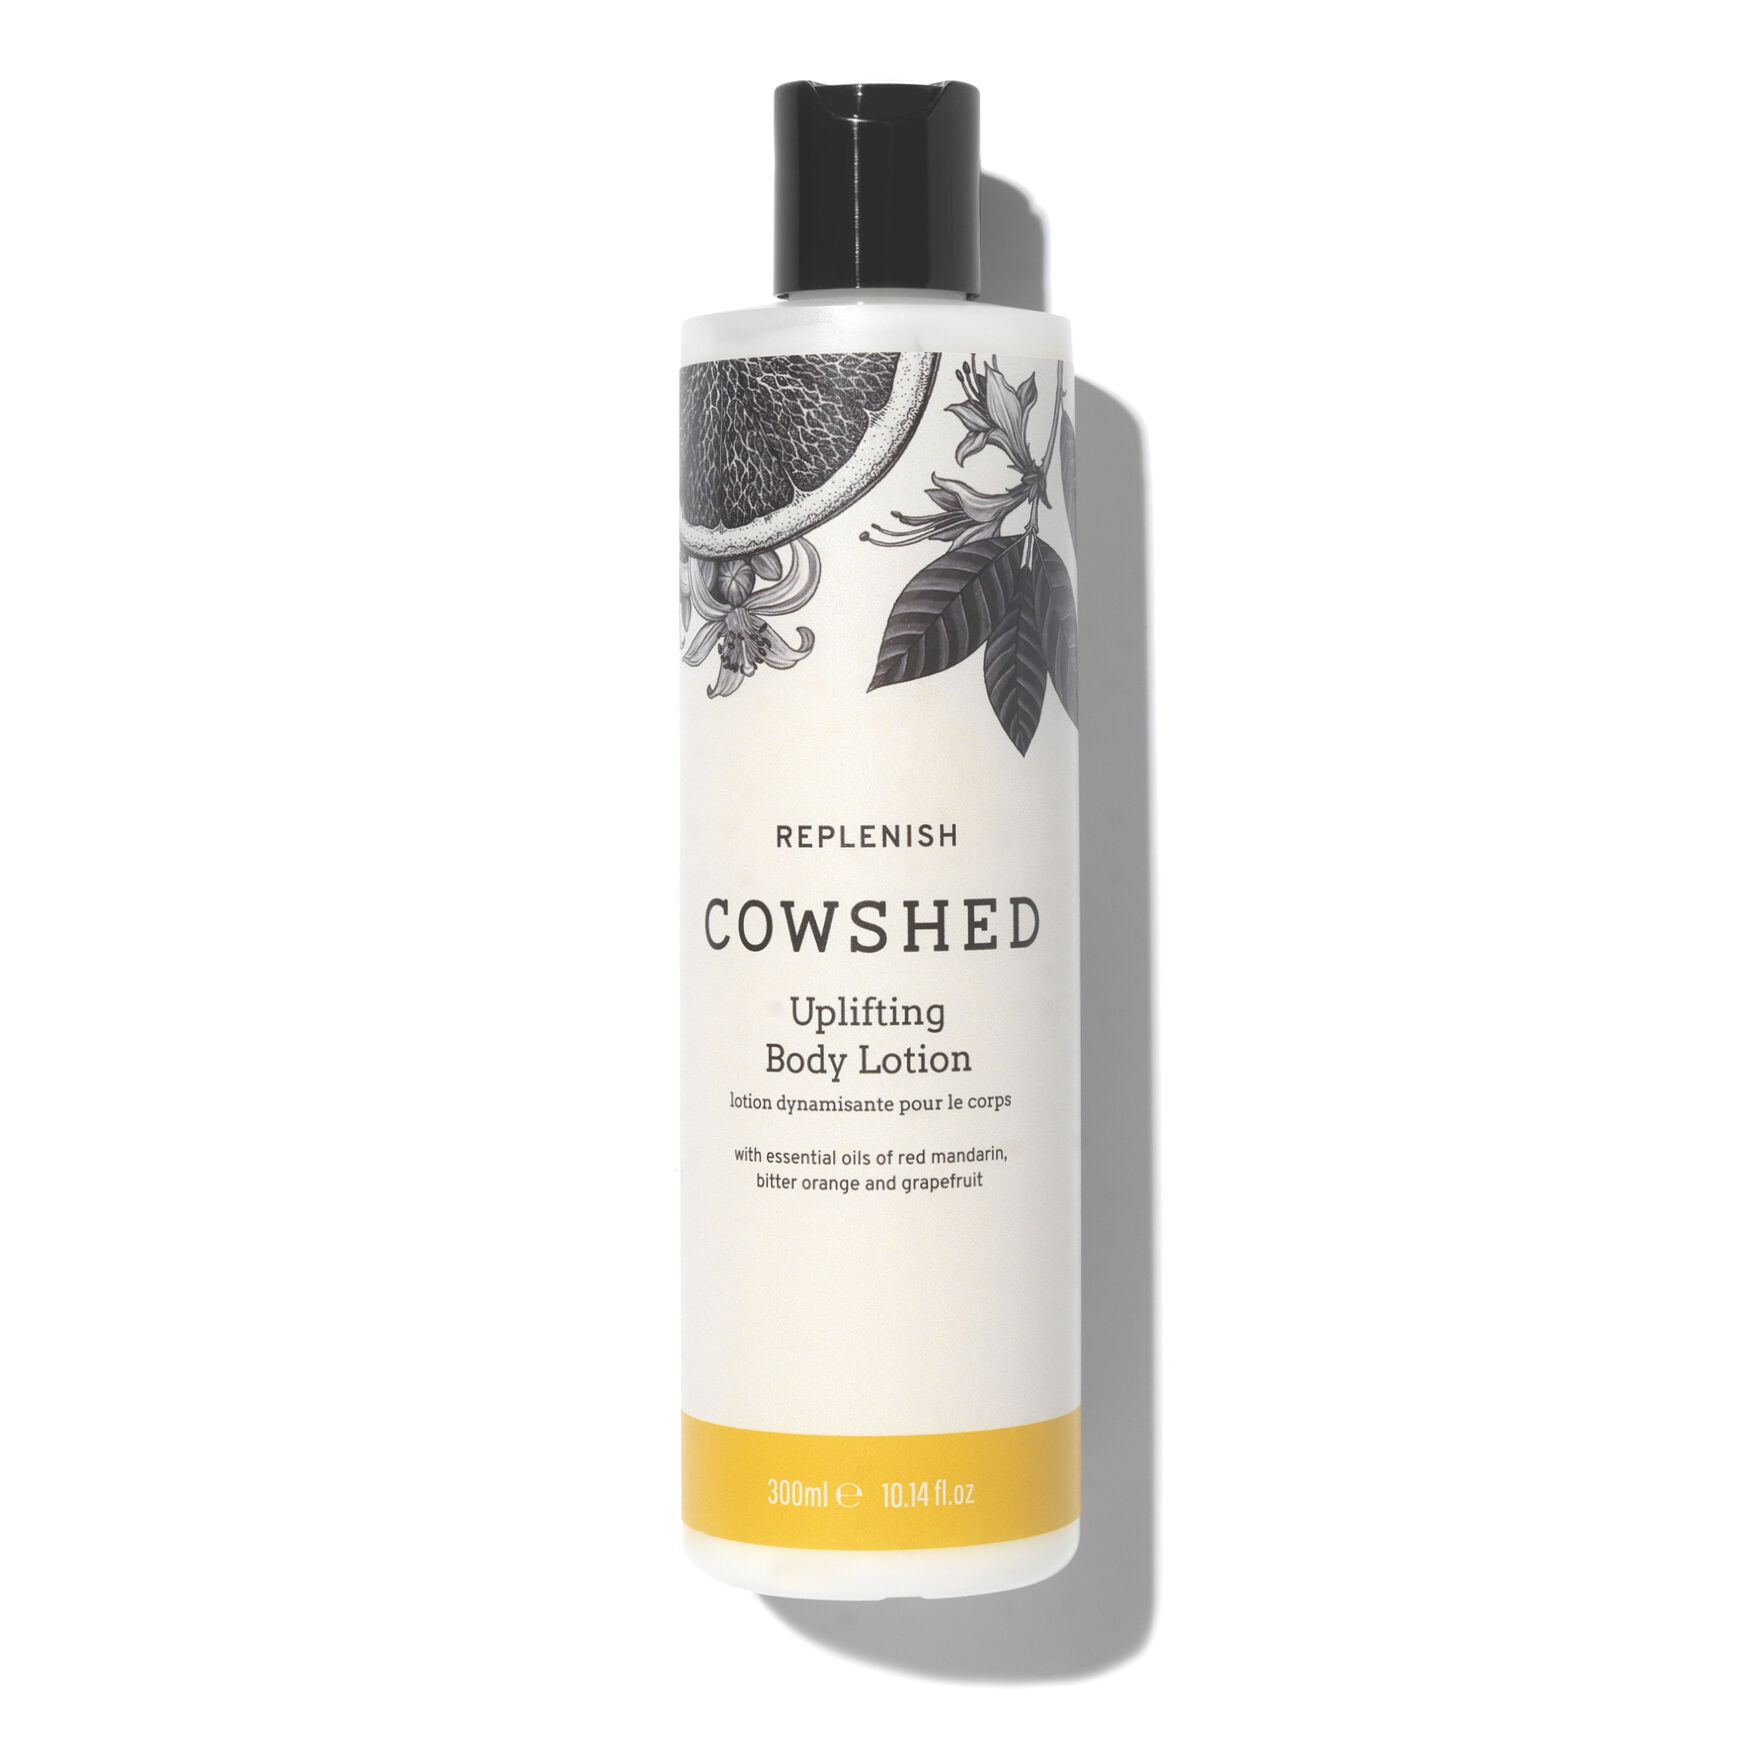 Cowshed Sleep Body & Pillow Mist | Space NK